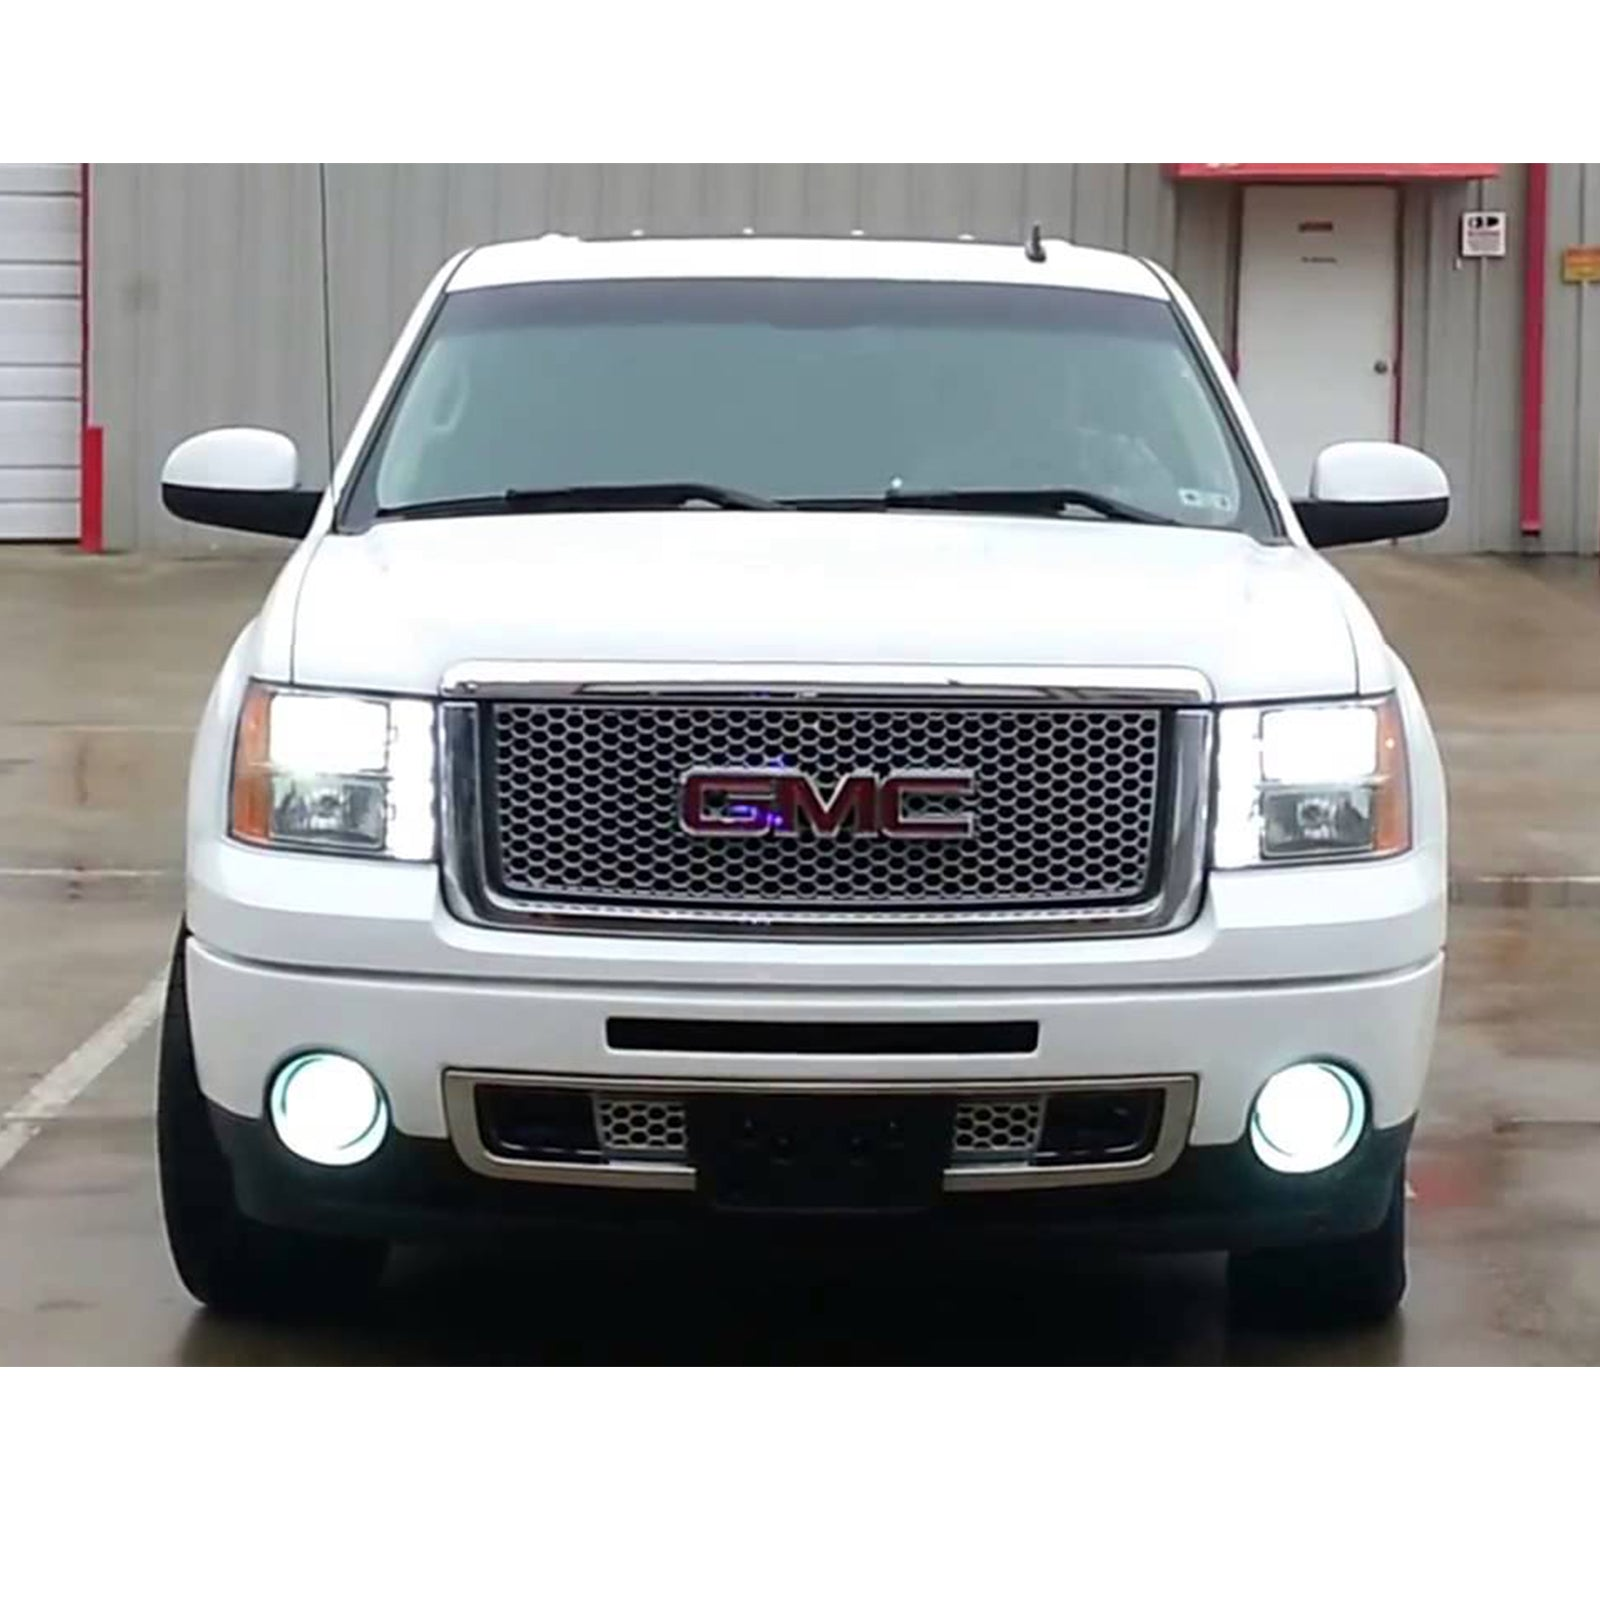 6000k Xenon White 9006 Hb4 Led Bulbs Headlight Low Beam